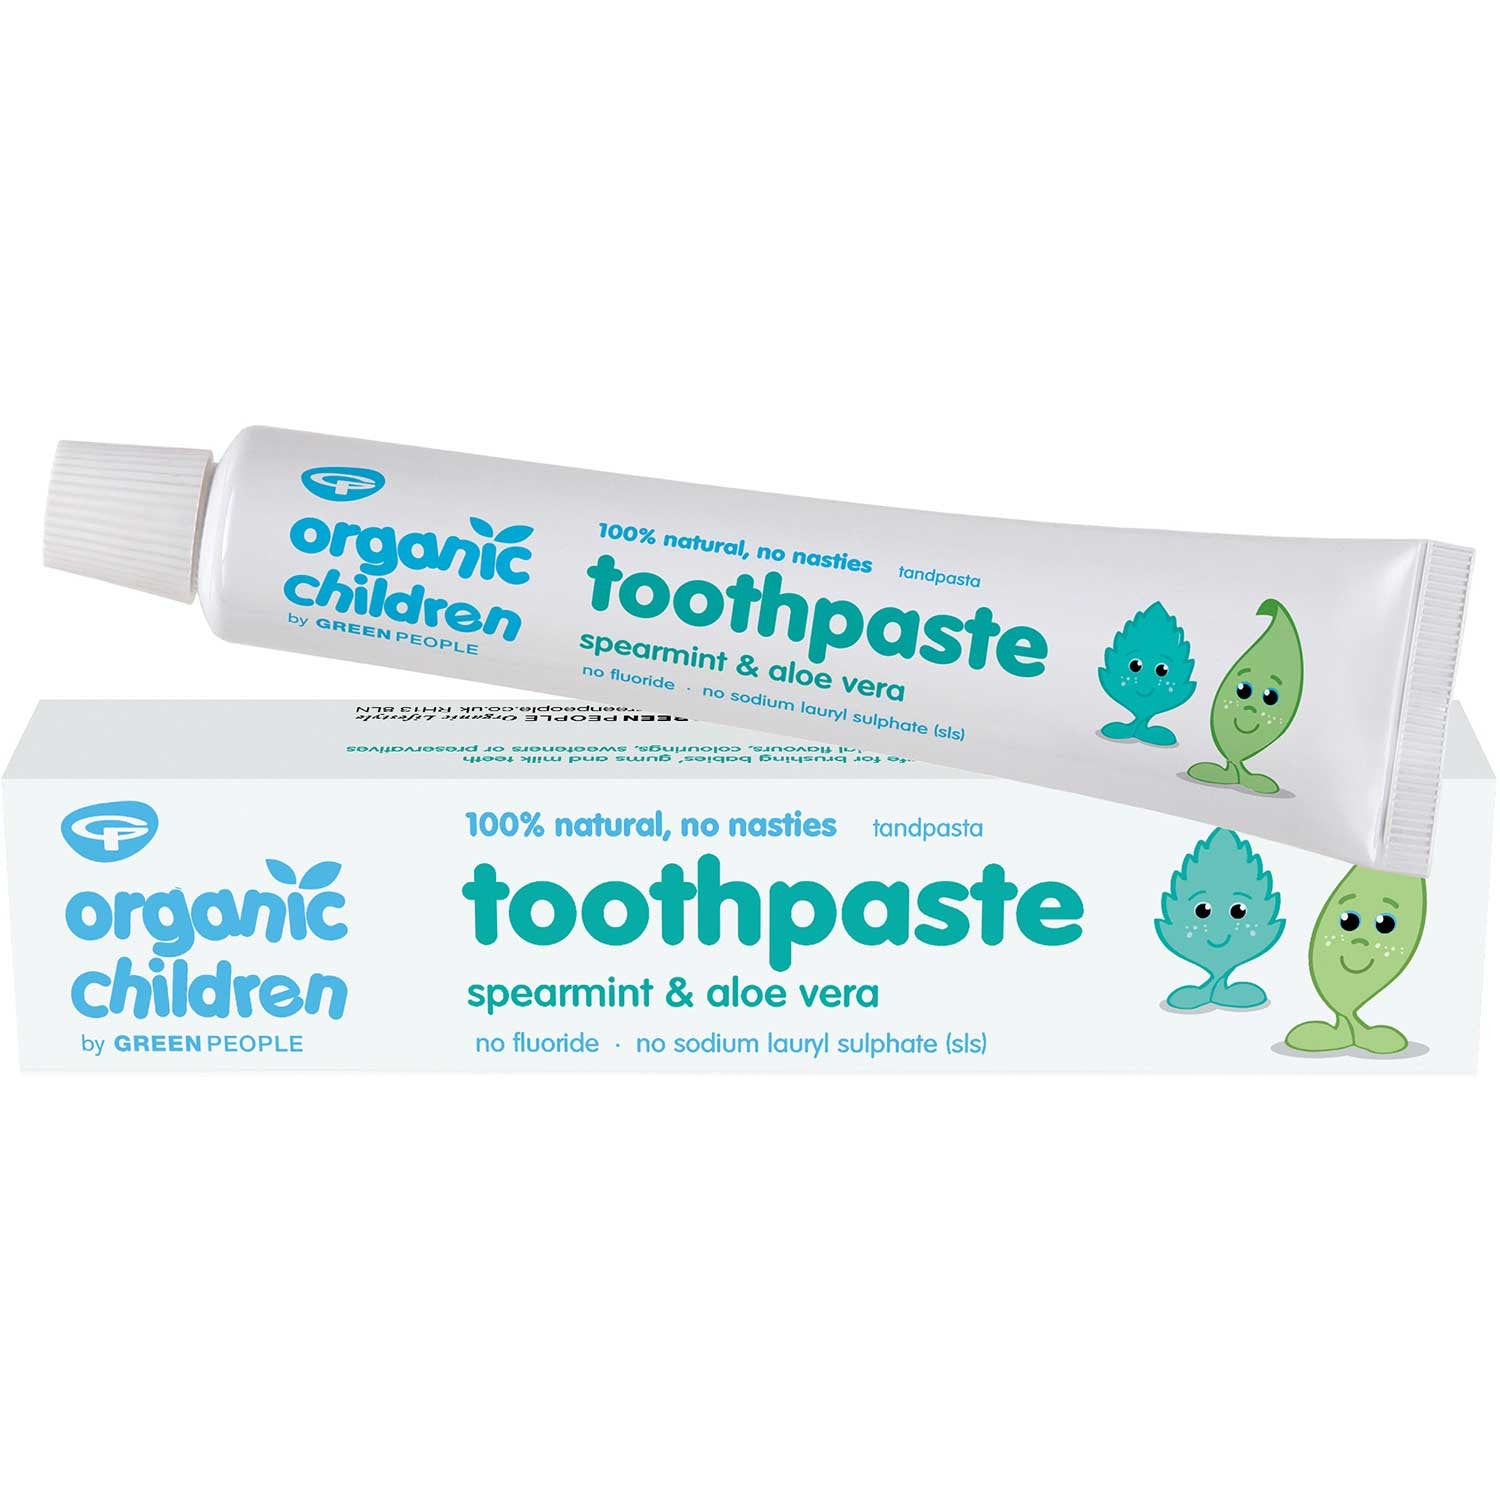 Green People Organic Children Spearmint & Aloe Vera Toothpaste, 50 ml.-NaturesWisdom